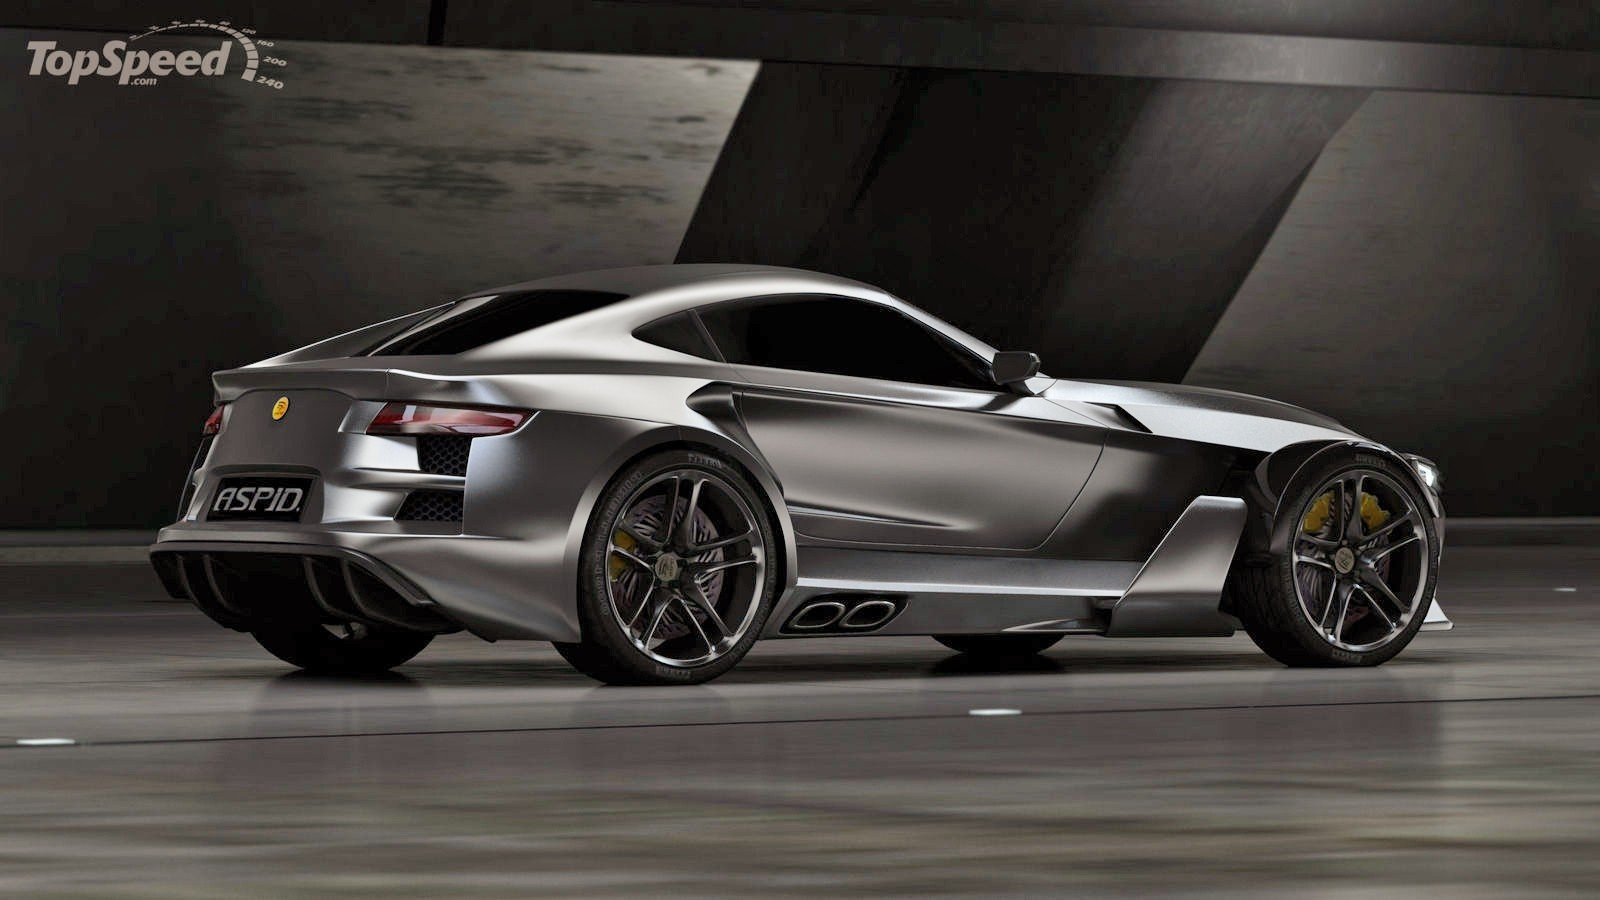 2015 IFR Automotive Aspid GT-21 Invictus